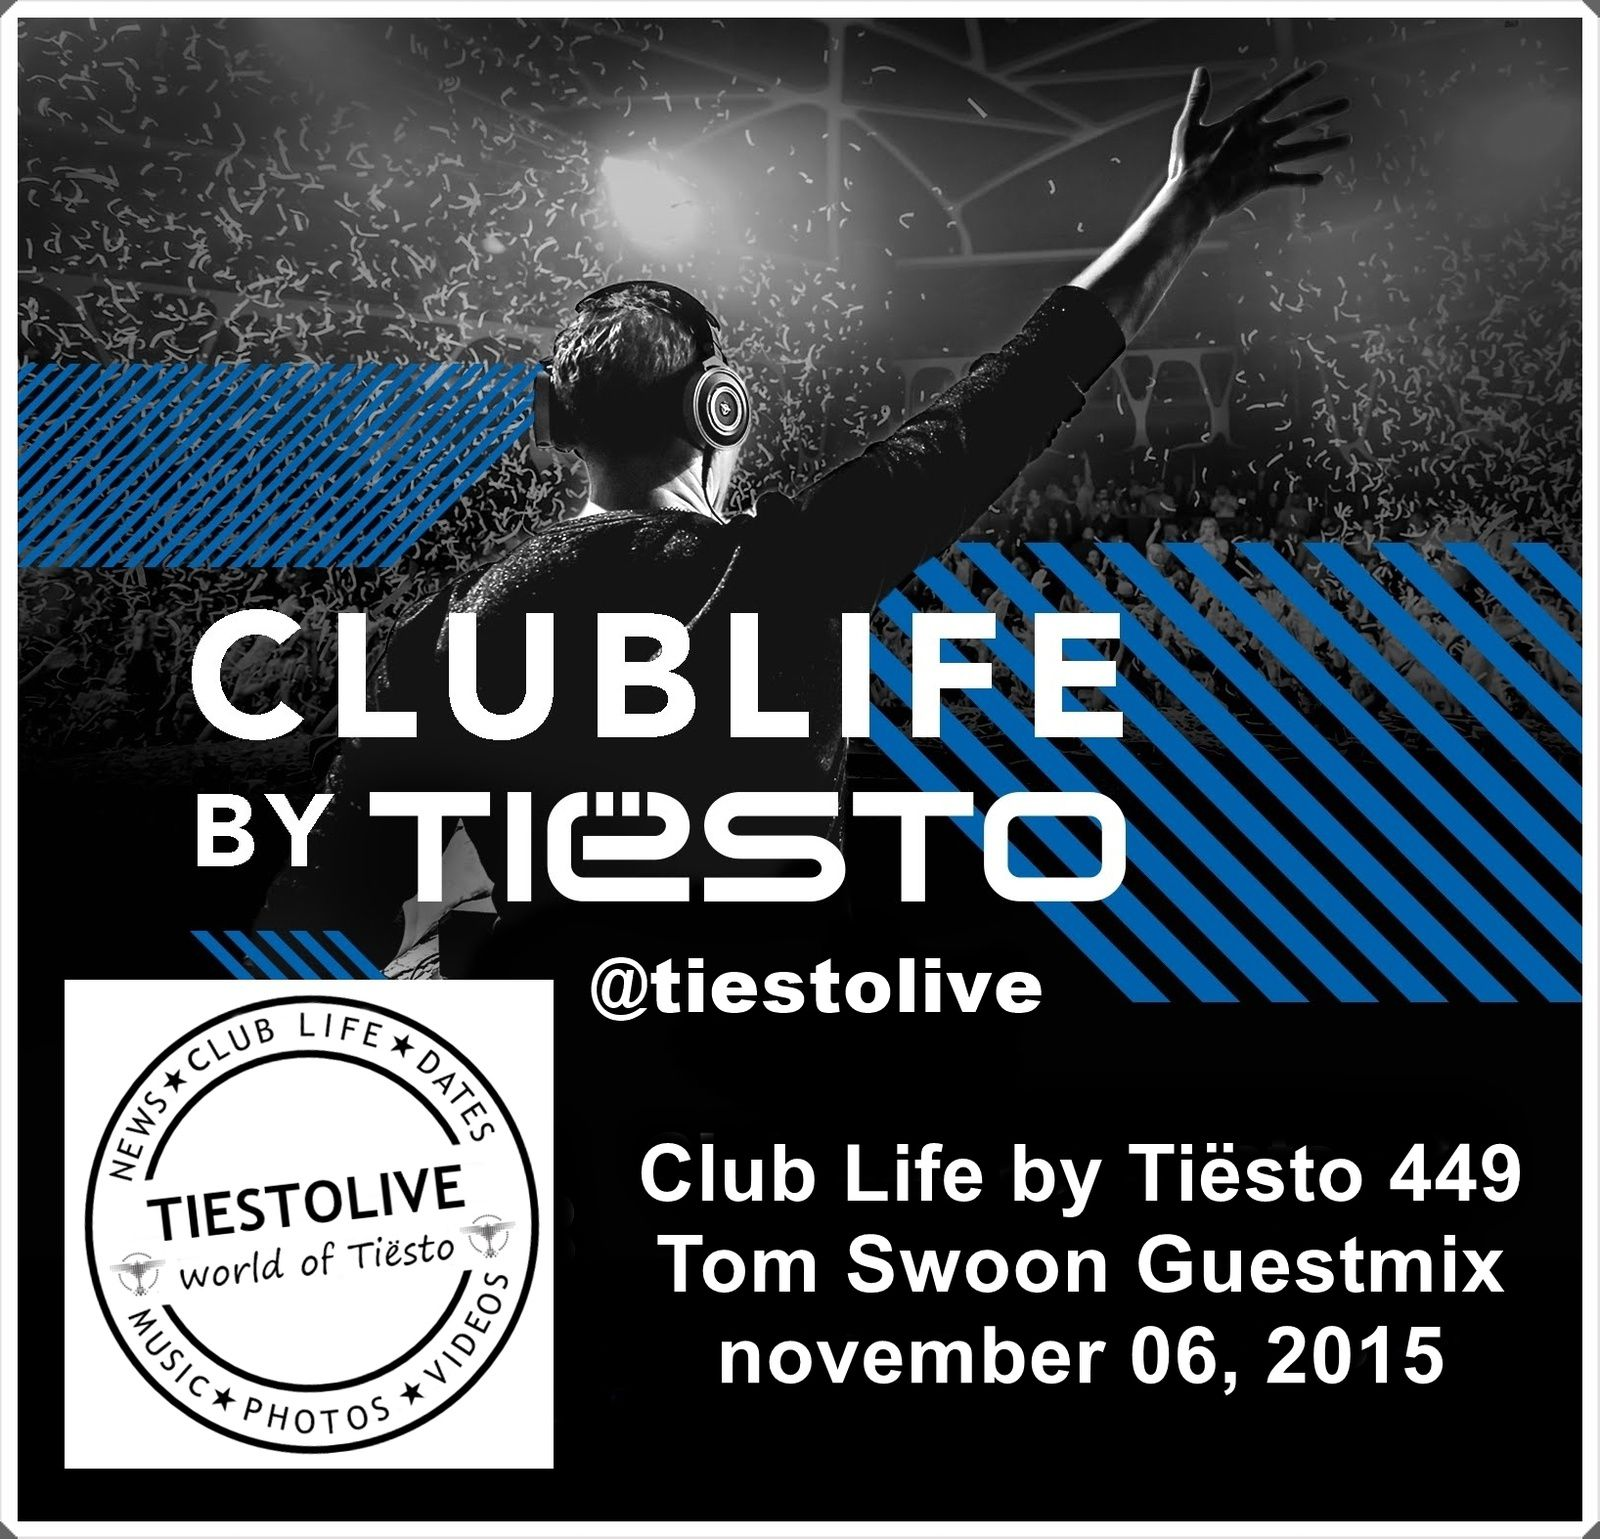 Club Life by Tiësto 449 - Tom Swoon Guestmix - november 06, 2015